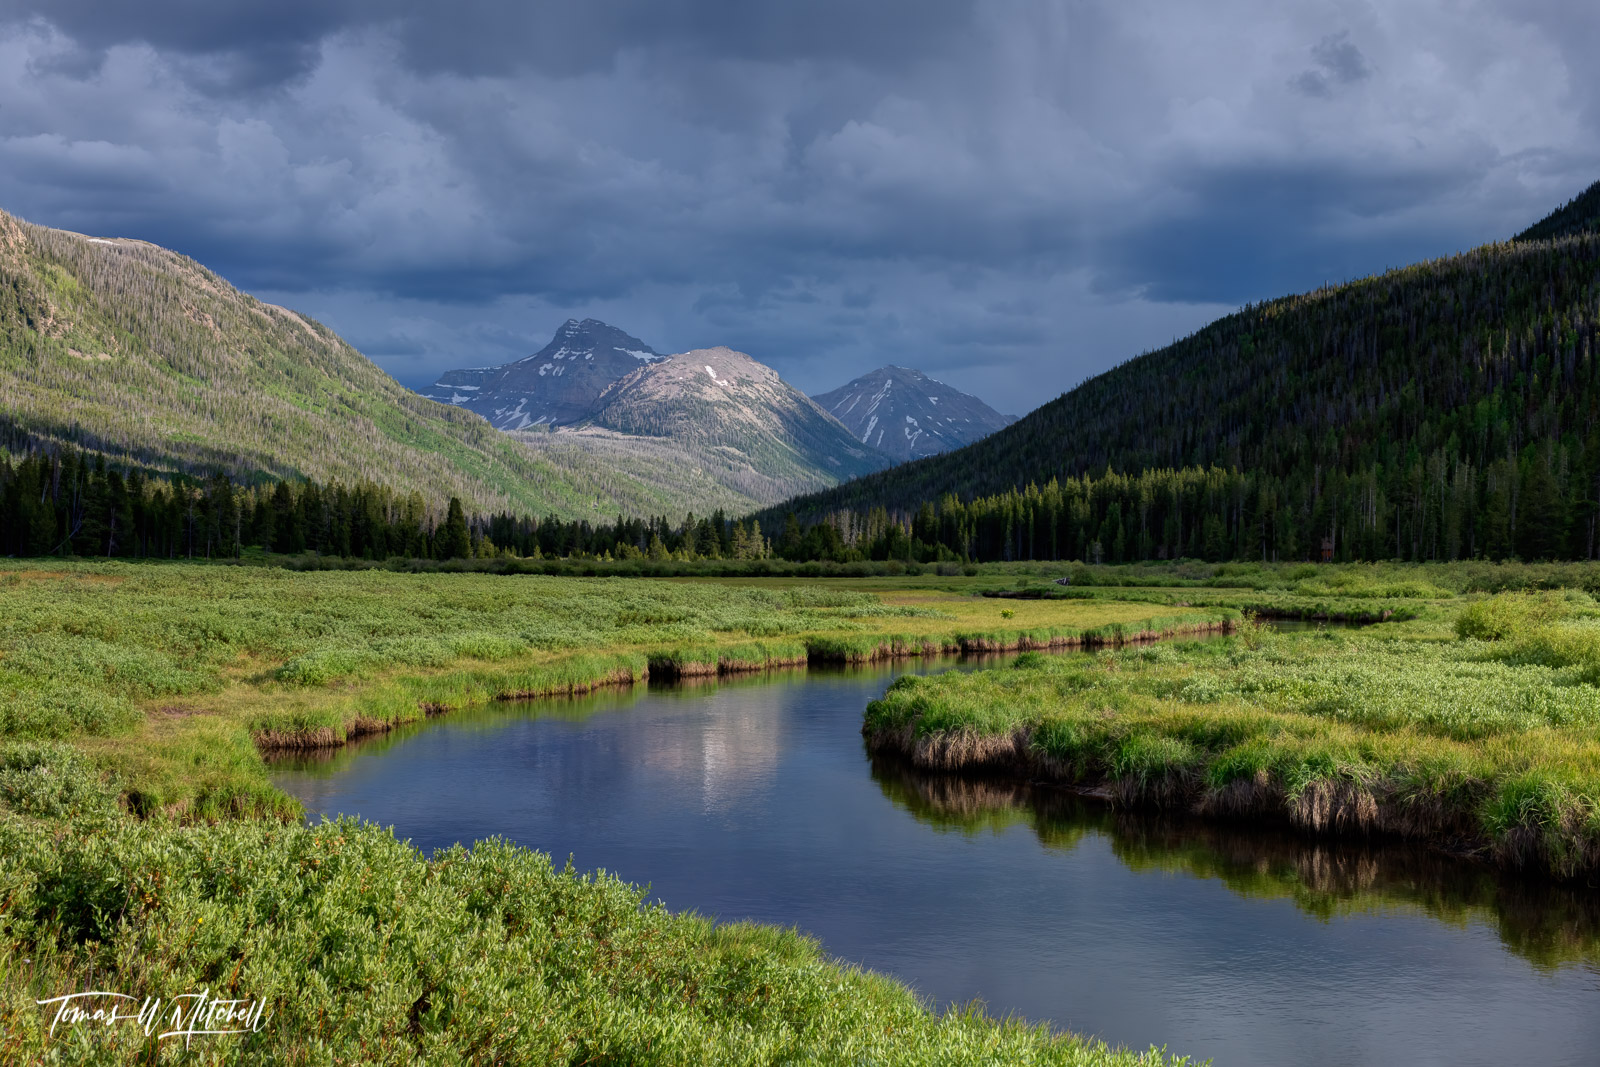 limited edition, fine art, prints, uinta wasatch cache national forest, utah, christmas meadows, mountains, summer storm, clouds, photograph, river, photo